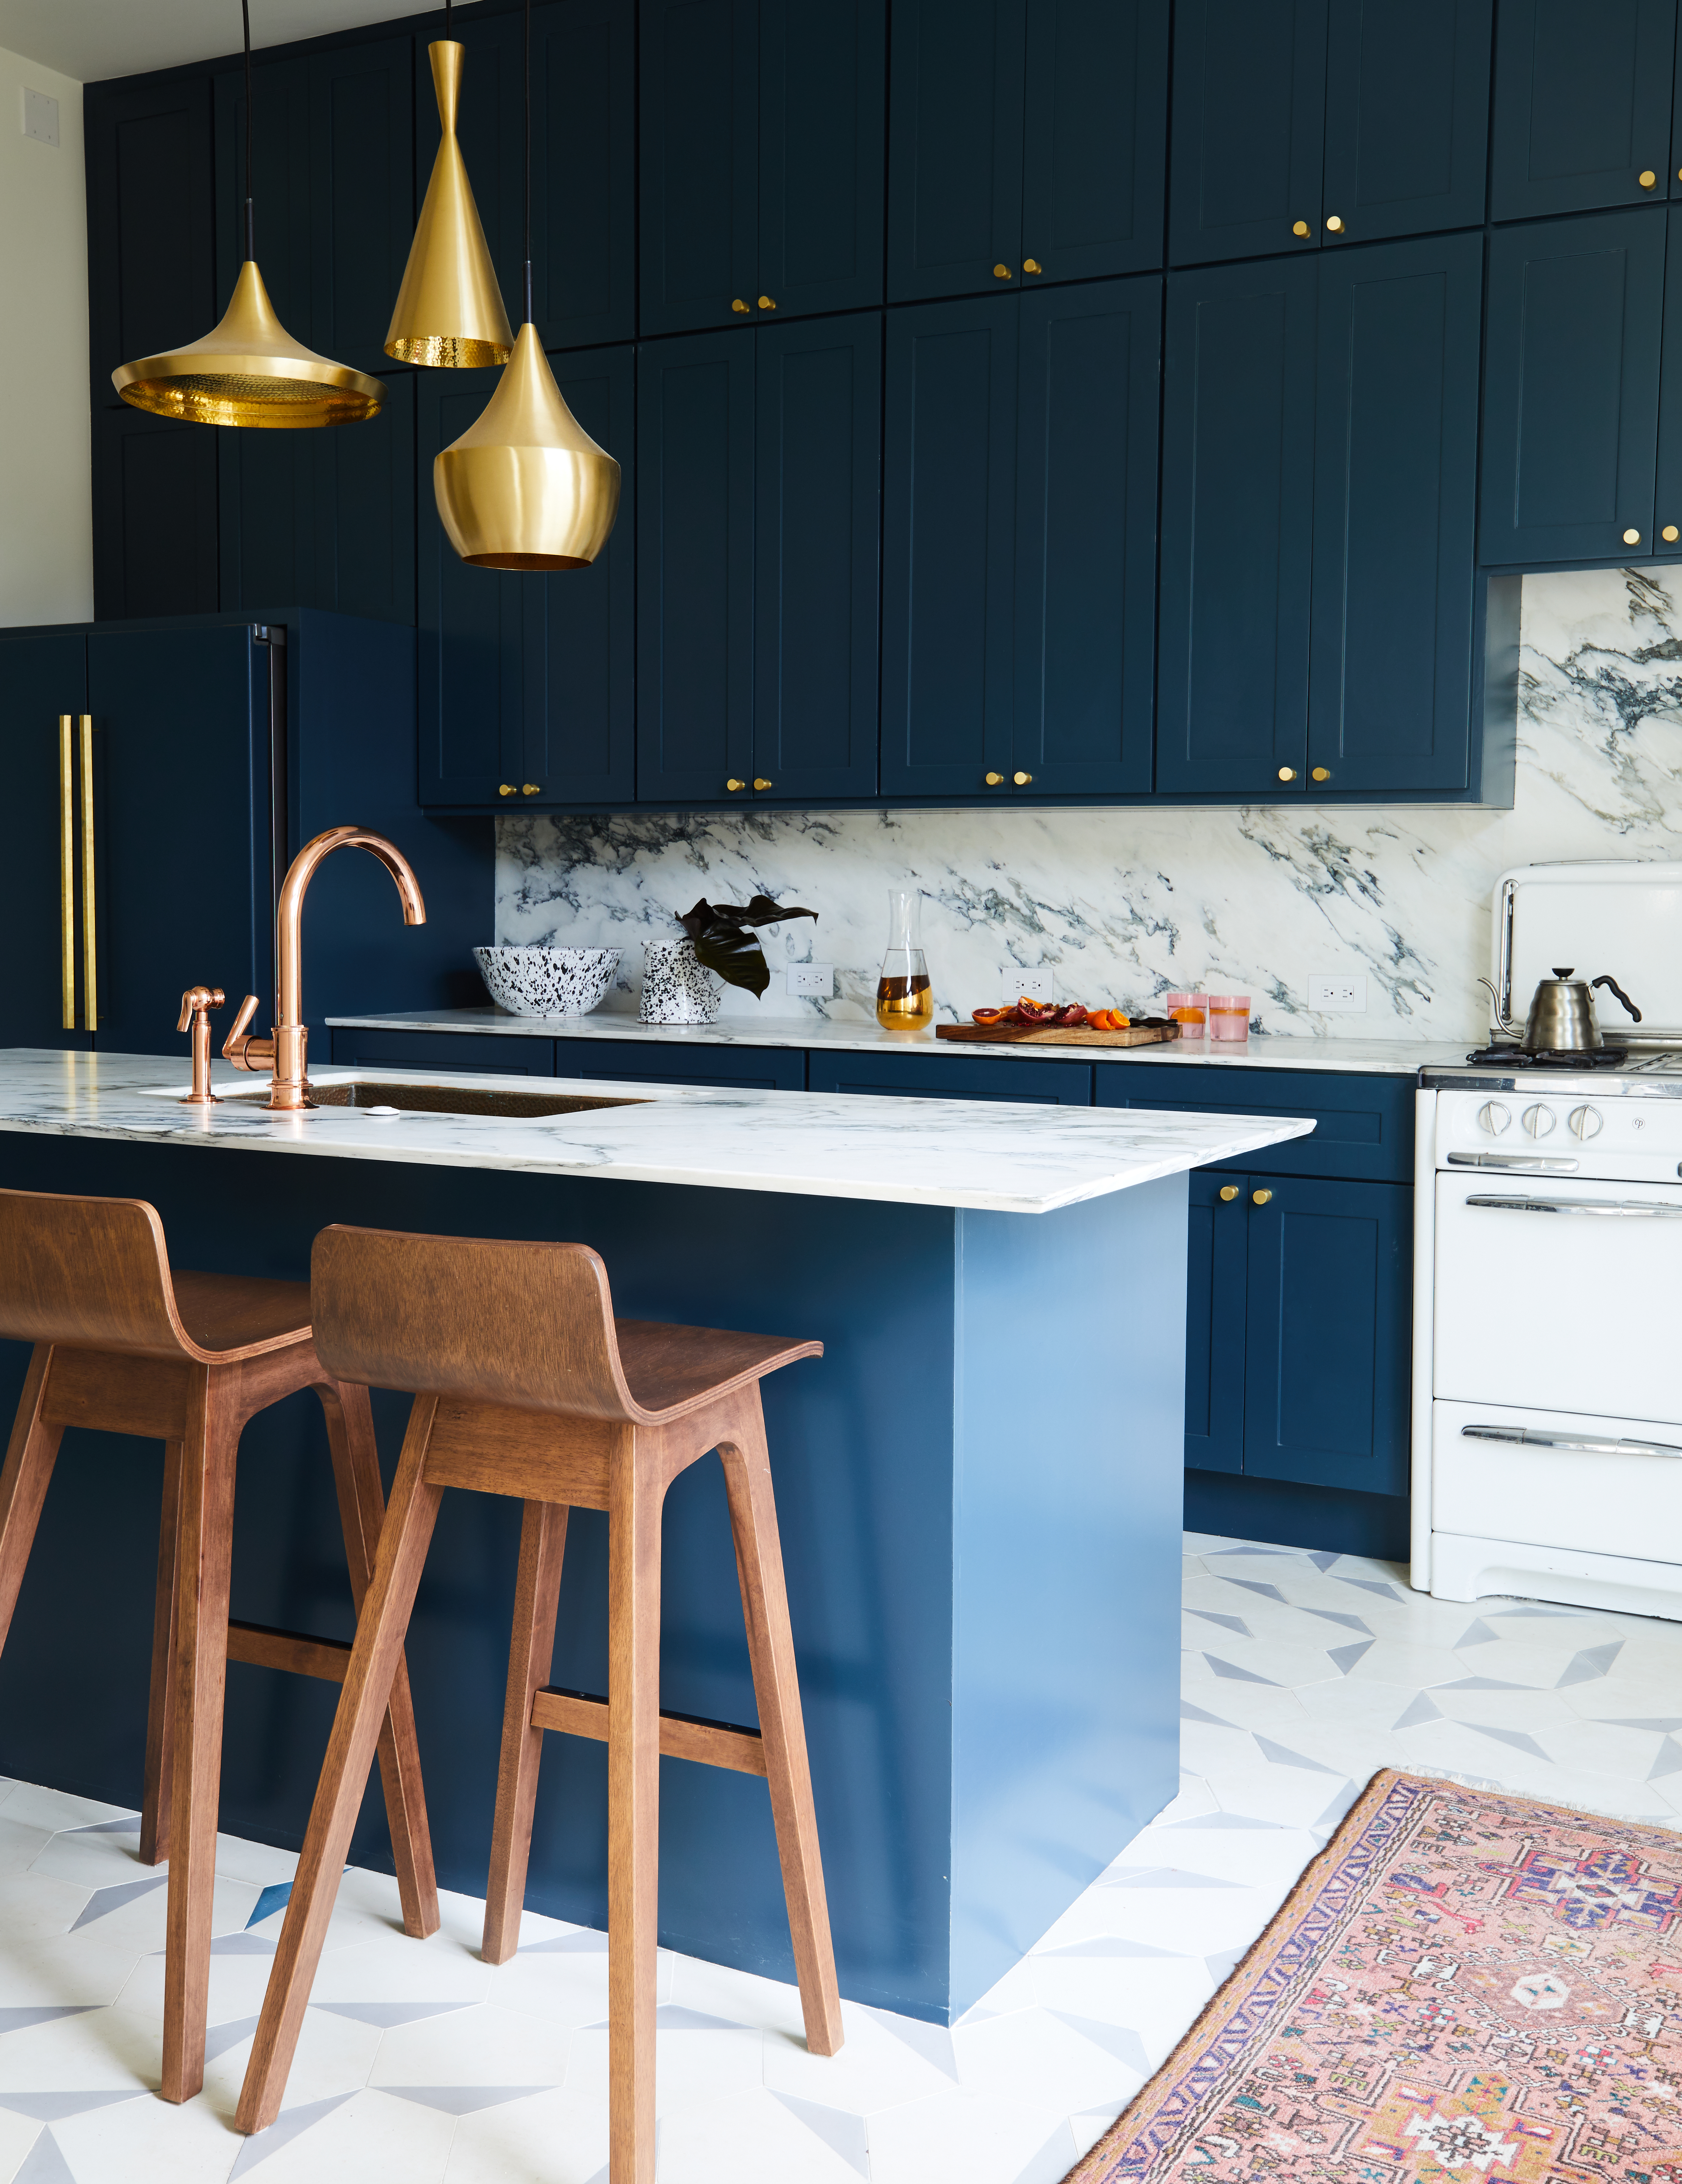 A kitchen with navy cabinets, brass fixtures, and brass lights dangling from the ceiling.